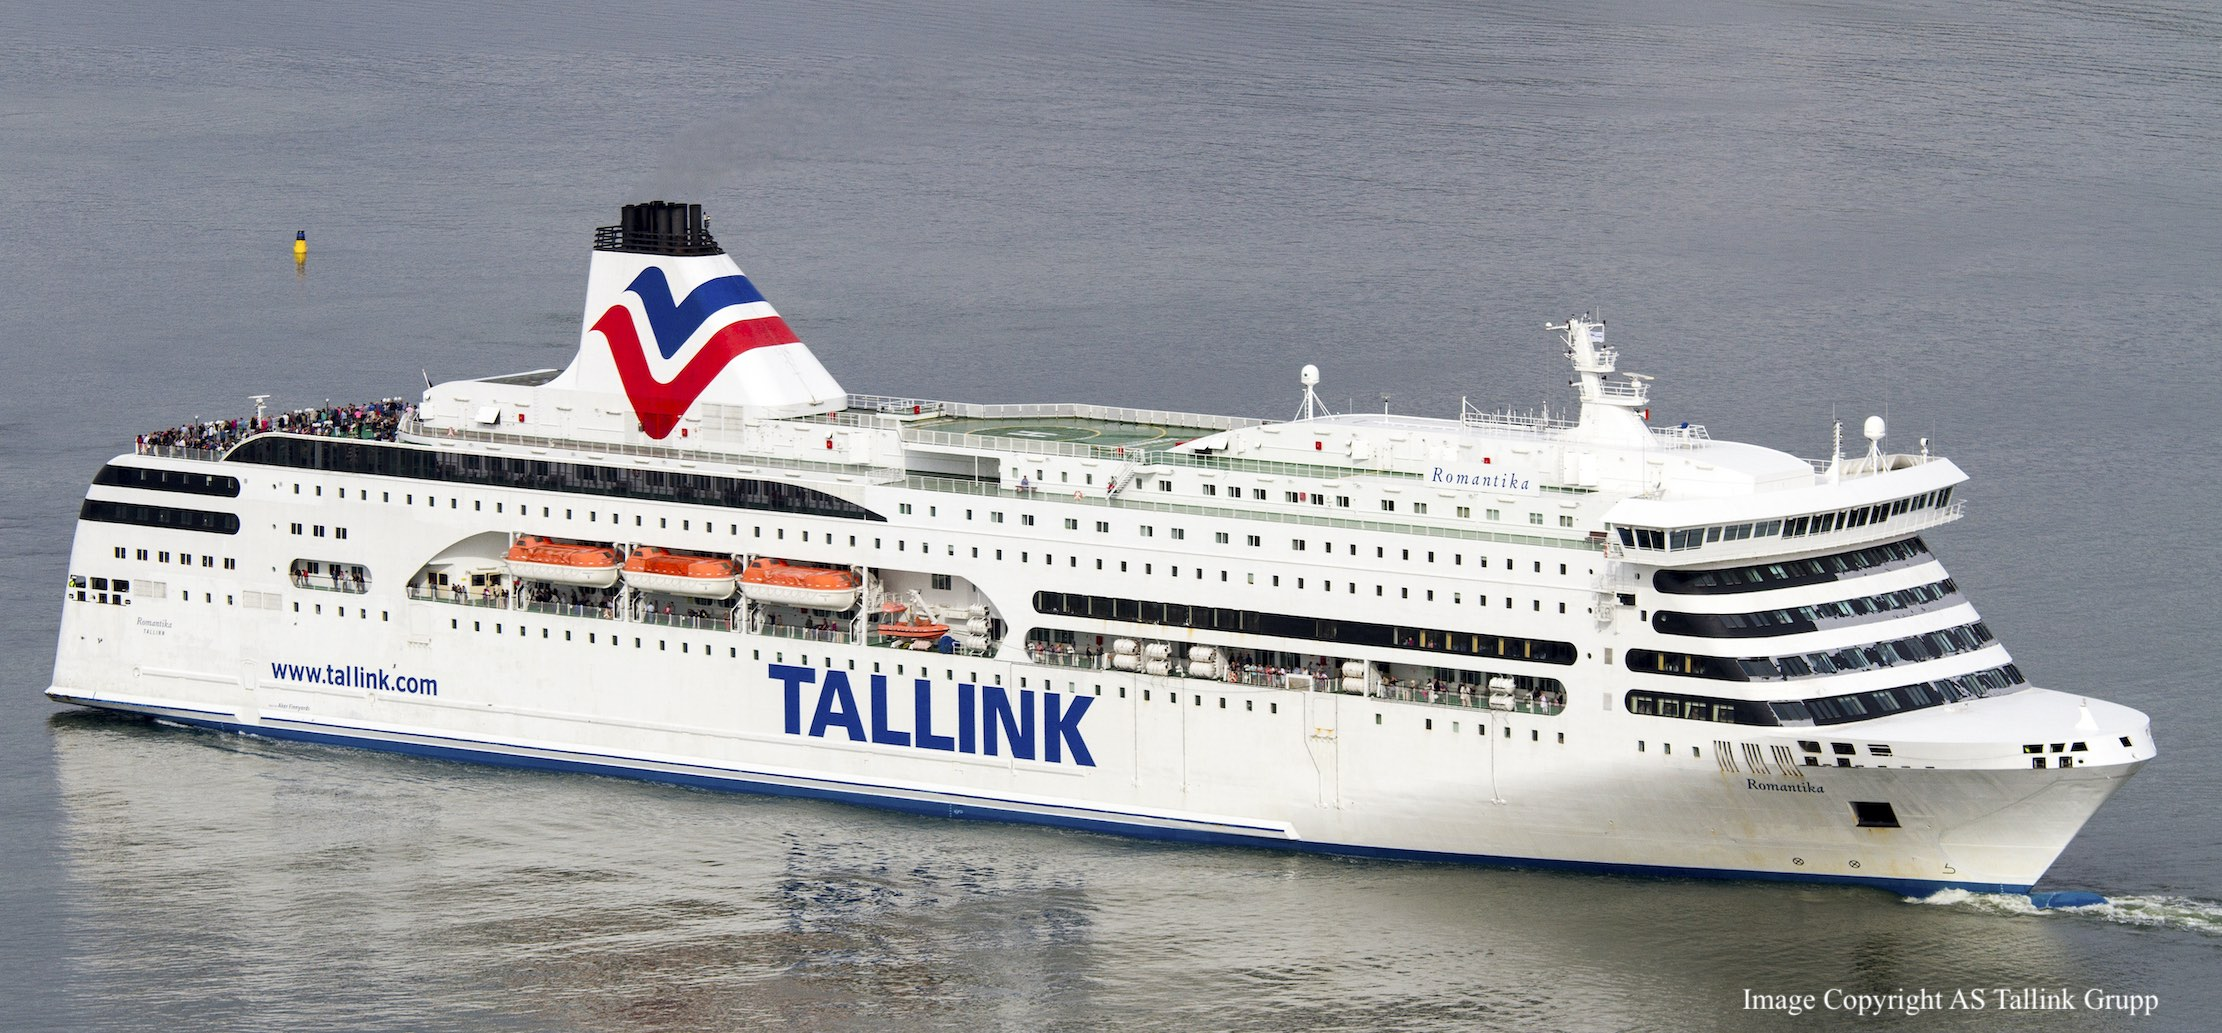 Photo de Tallink Silja - Navire Romantika